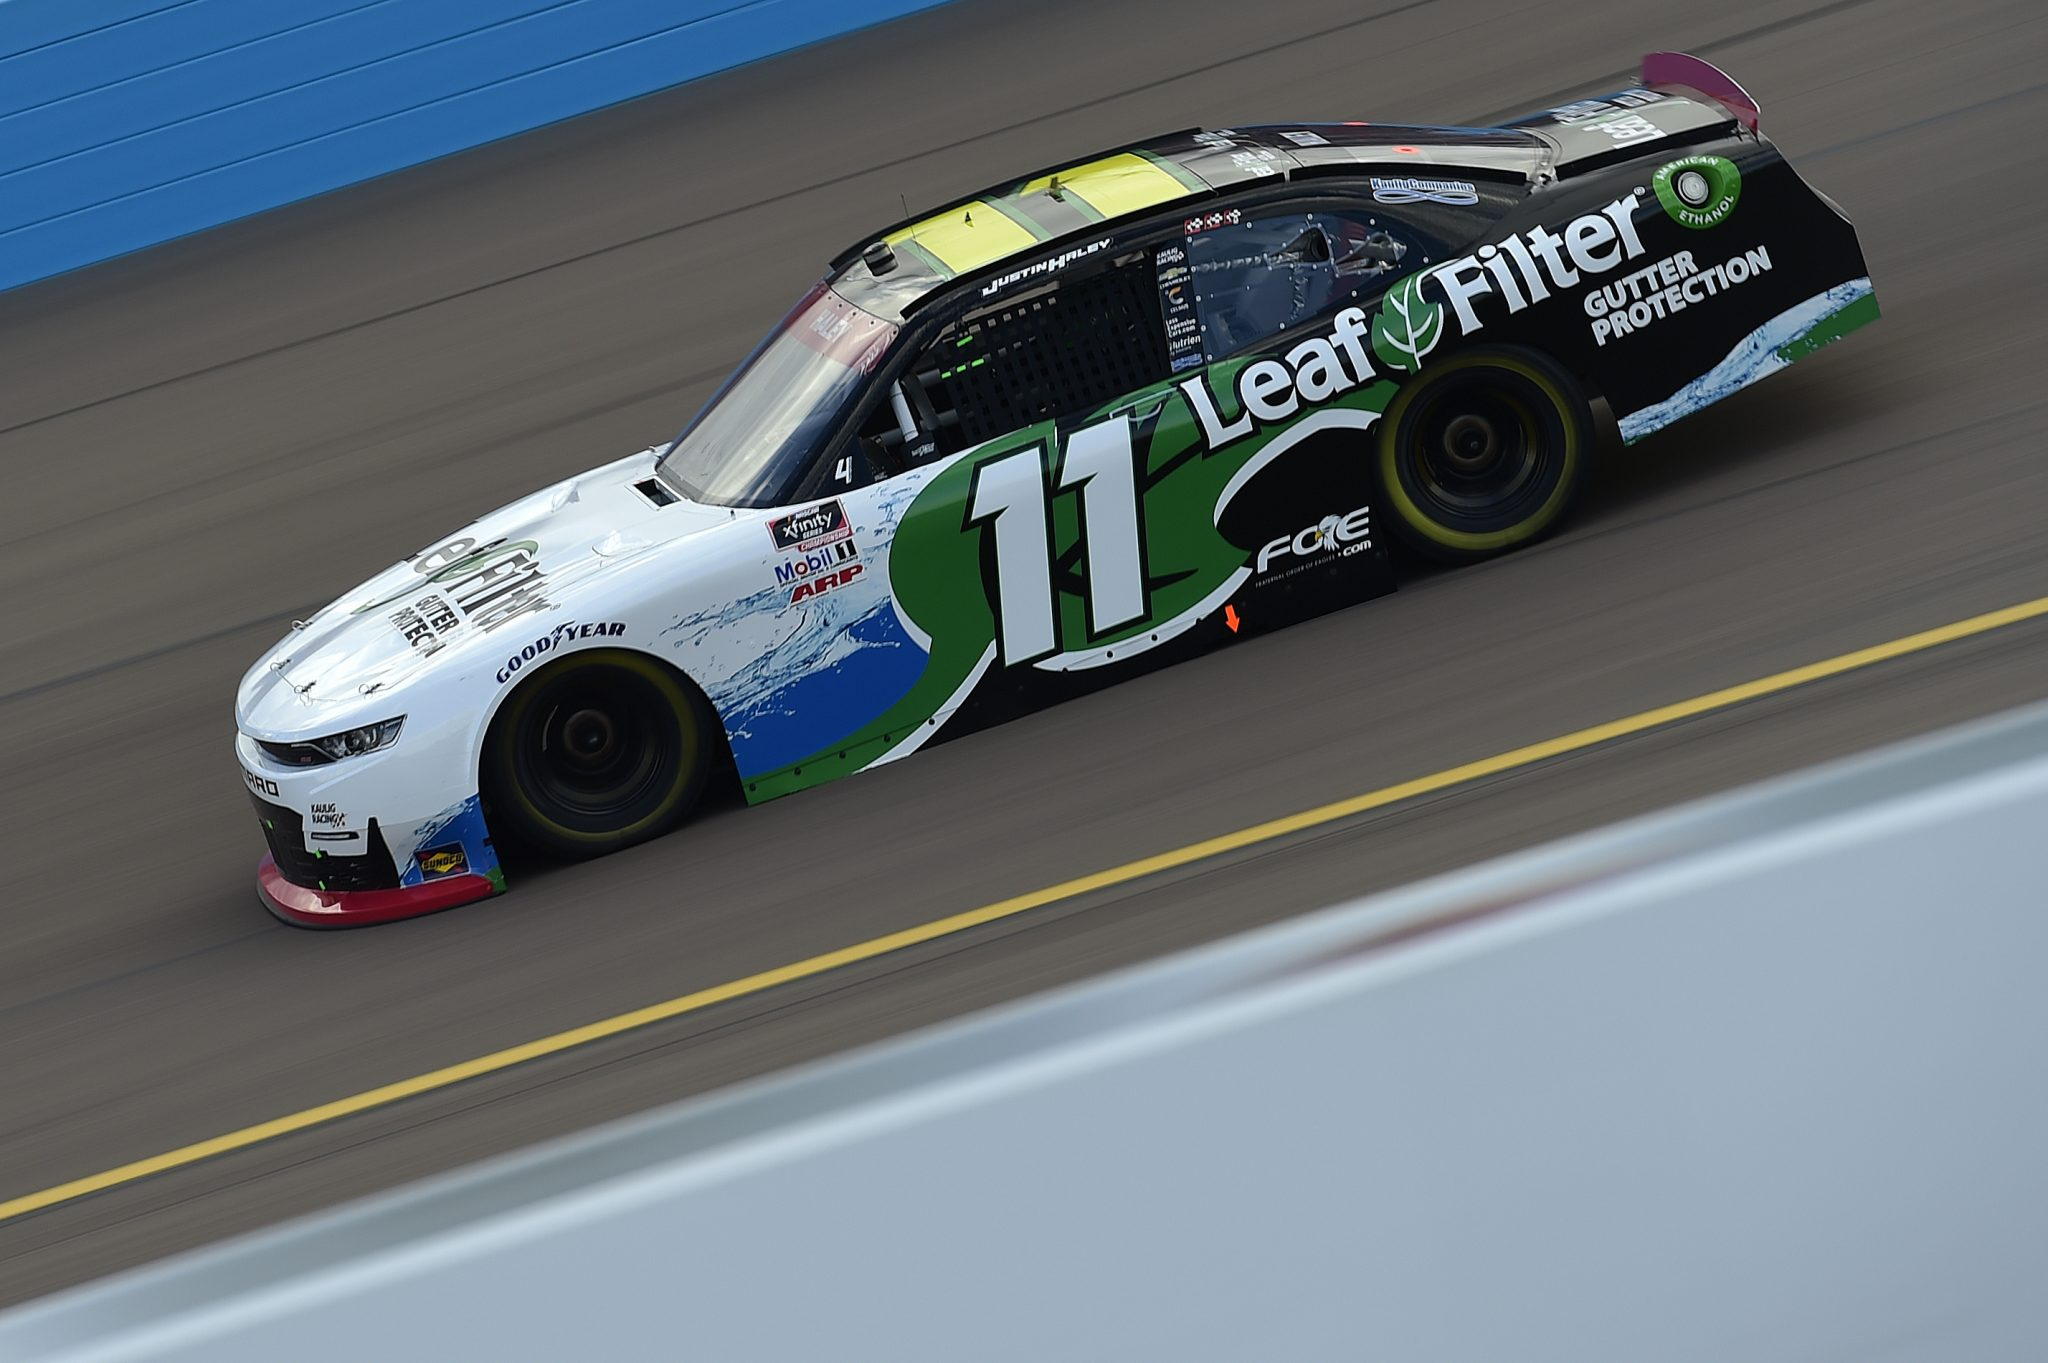 AVONDALE, ARIZONA - NOVEMBER 07: Justin Haley, driver of the #11 LeafFilter Gutter Protection Chevrolet, drives during the NASCAR Xfinity Series Desert Diamond Casino West Valley 200 at Phoenix Raceway on November 07, 2020 in Avondale, Arizona. (Photo by Jared C. Tilton/Getty Images) | Getty Images